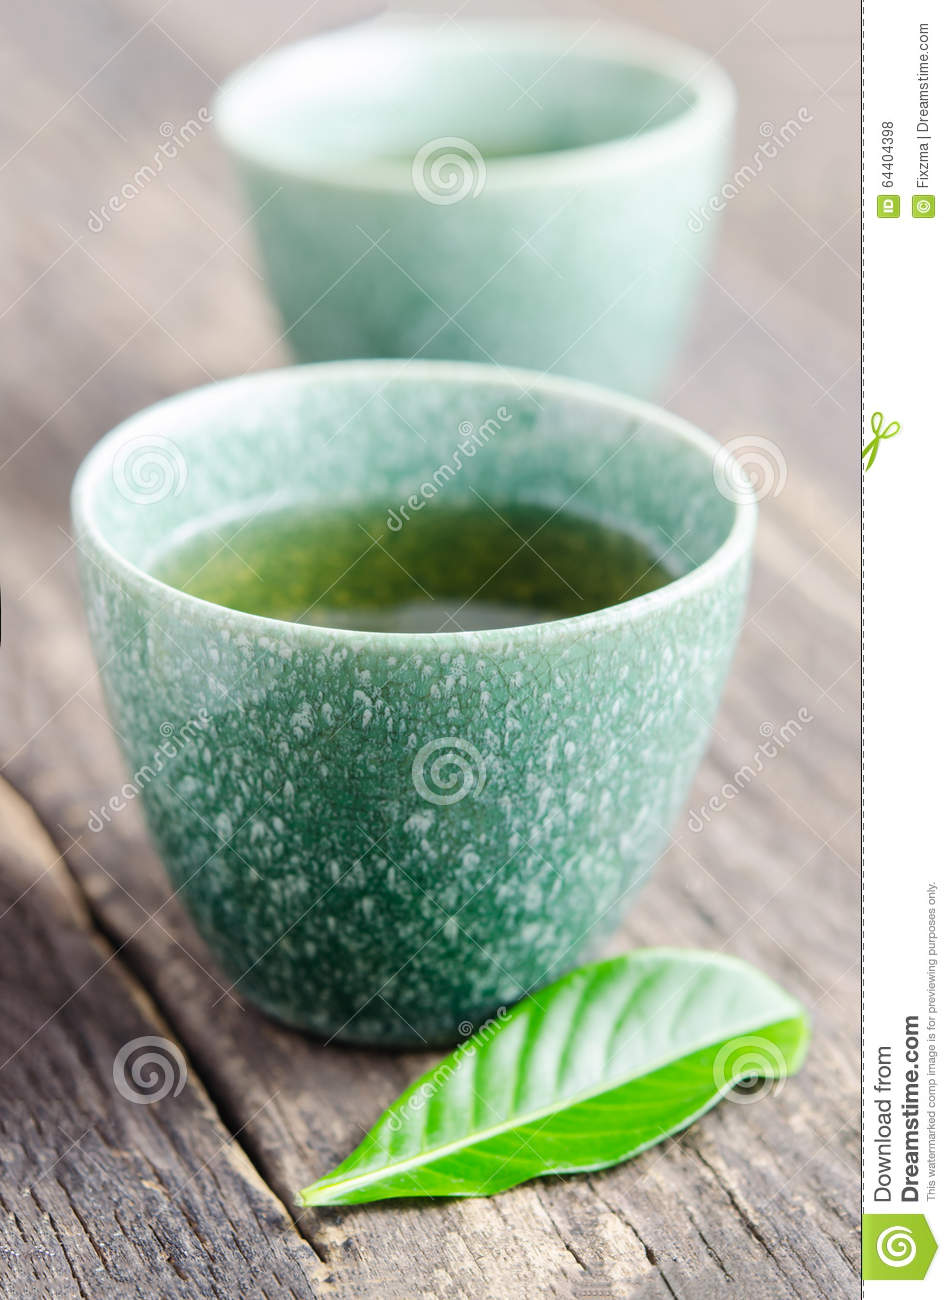 Homemade Japanese Tea Cup Stock Photo Image Of Beverage